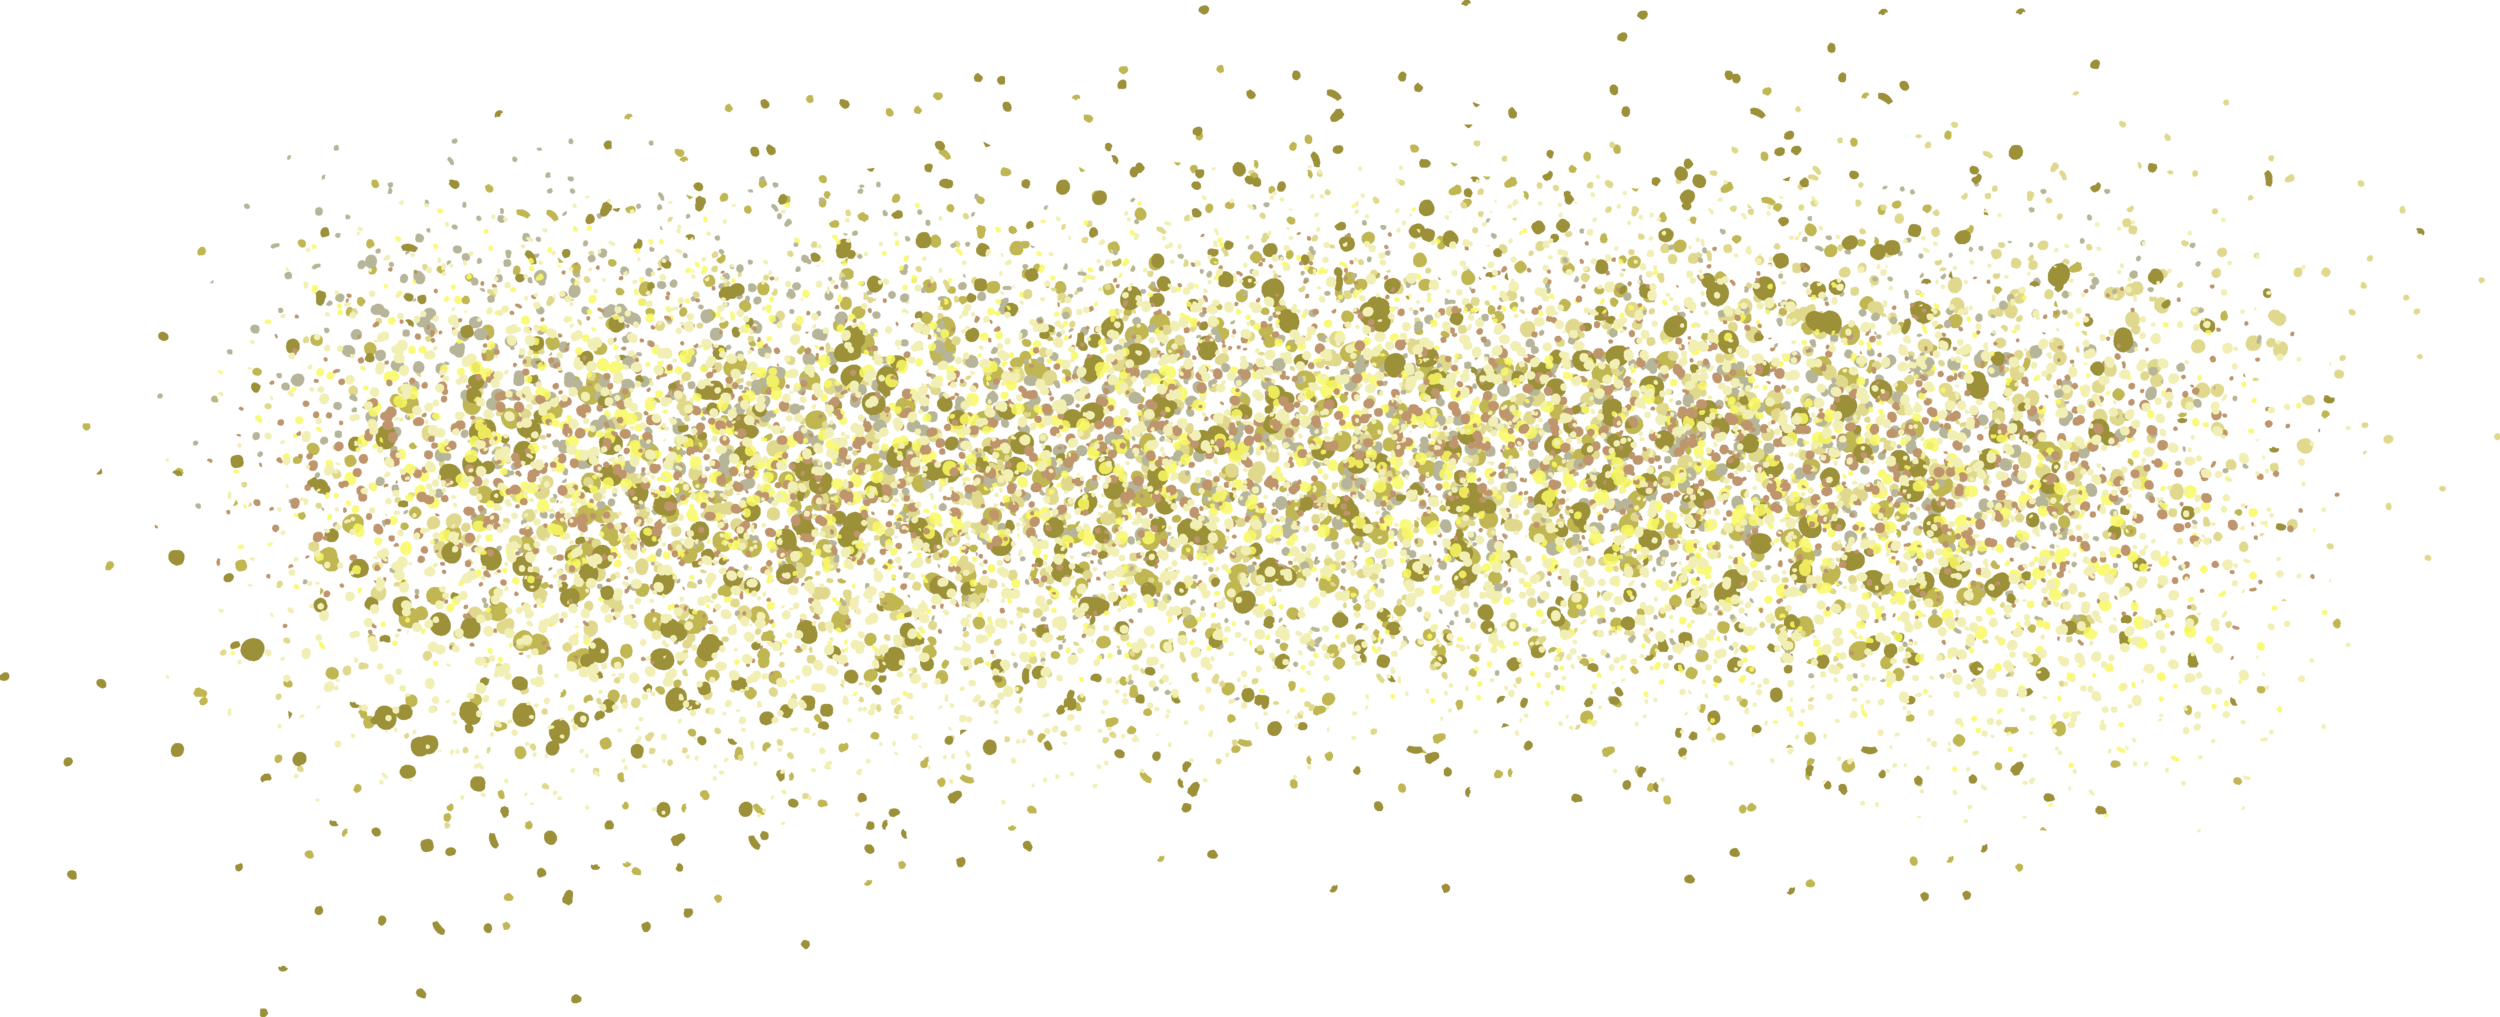 Glitter Clipart Png & Free Glitter Clipart.png Transparent.